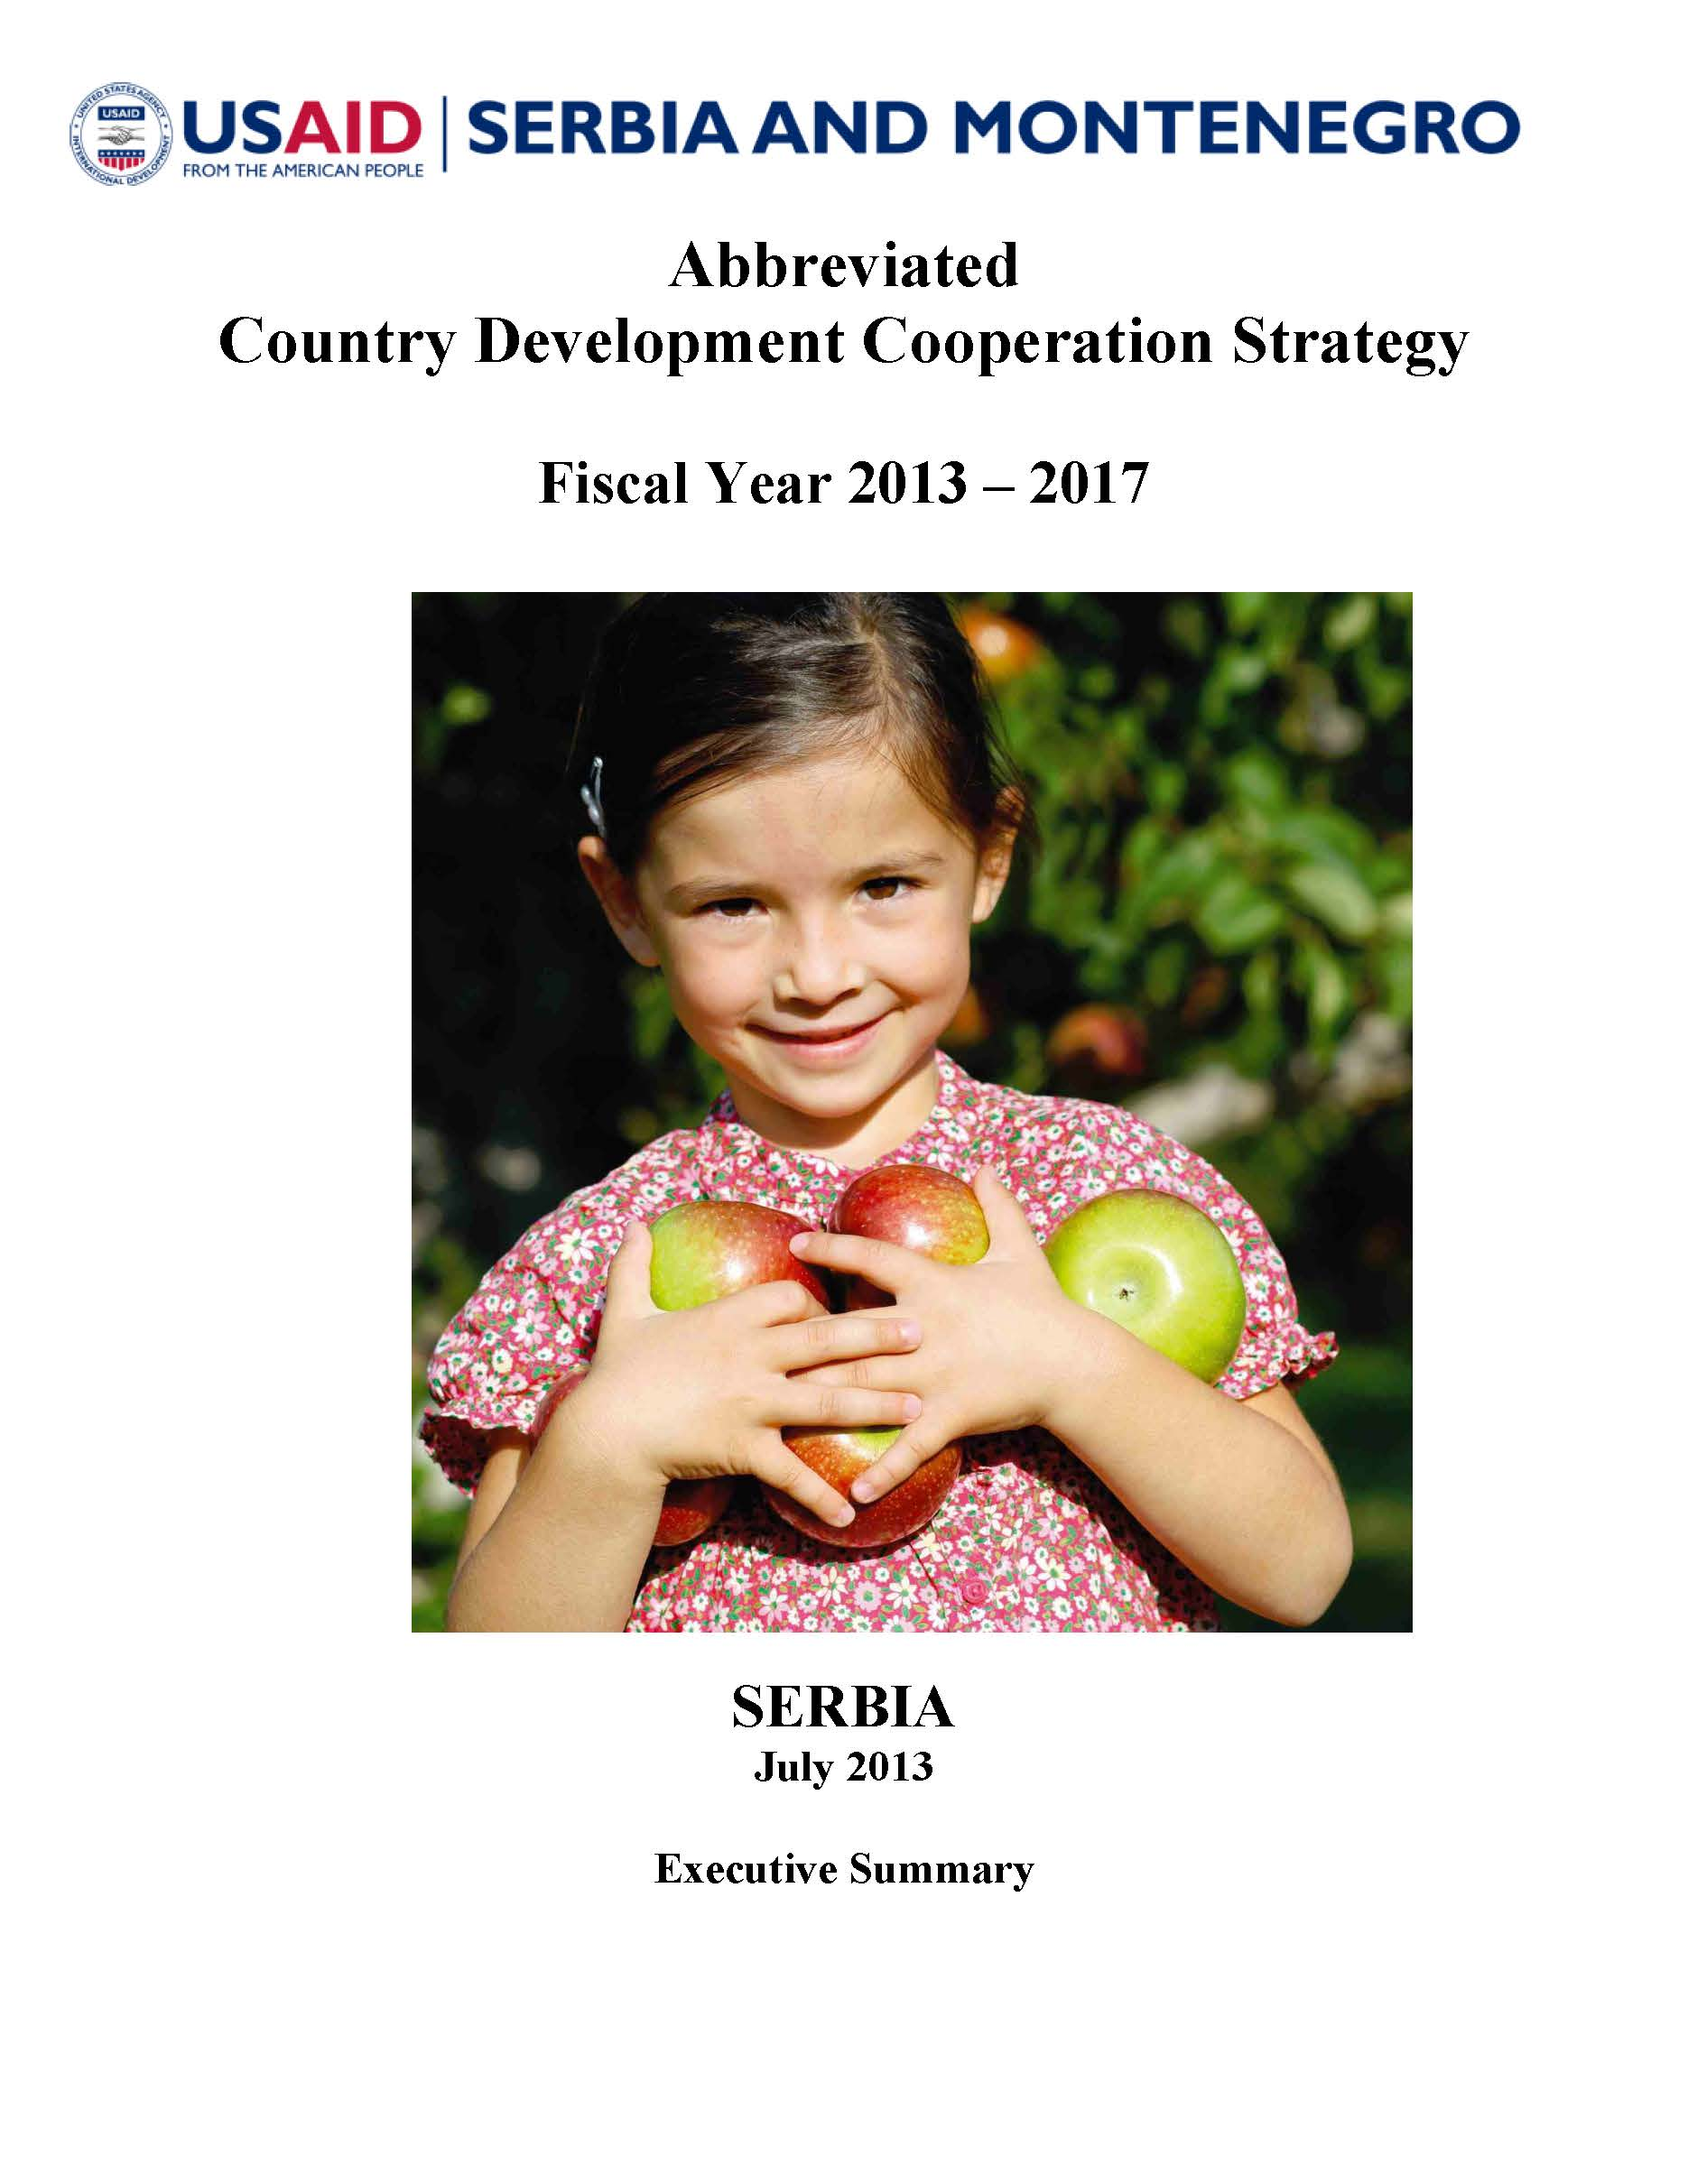 Abbreviated Country Development and Cooperation Strategy